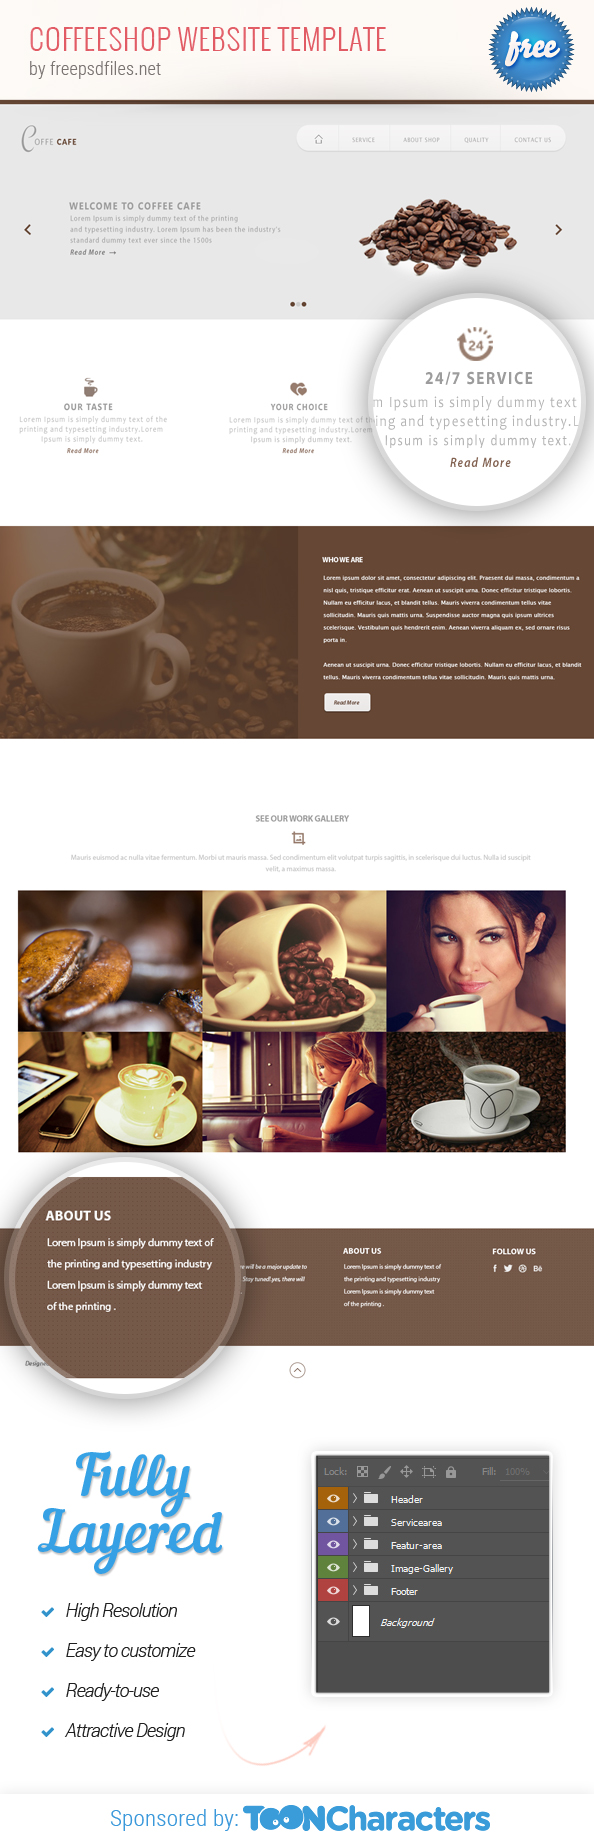 free psd coffeeshop website template free psd files. Black Bedroom Furniture Sets. Home Design Ideas